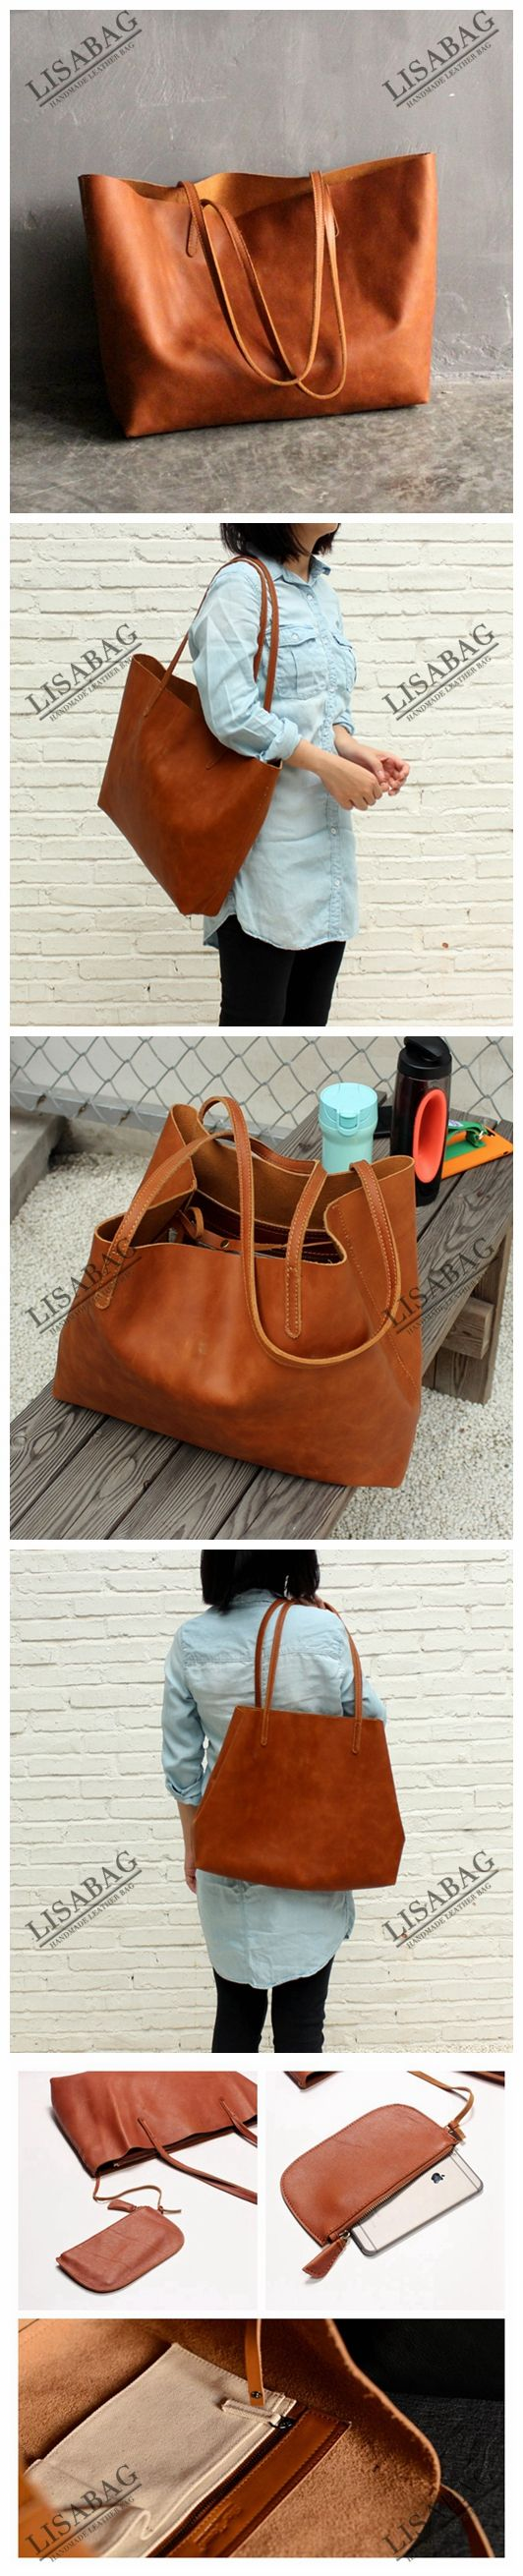 Handmade Women's Fashion Leather Tote Bag Shoulder Bag Shopper Bag ZB01--LISABAG